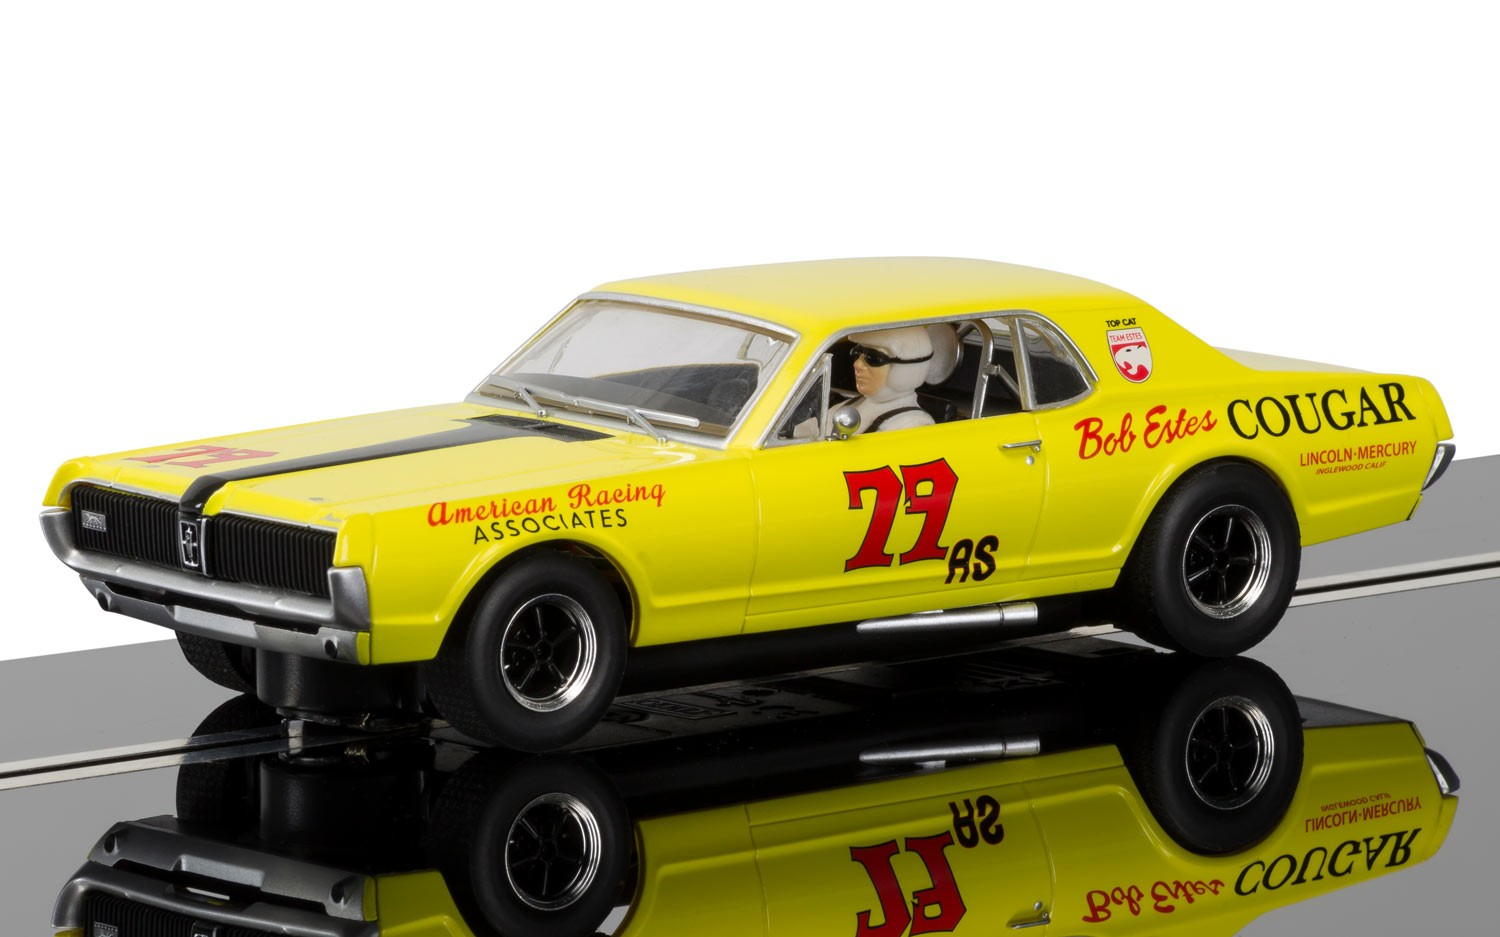 1967 Bob Estes Mercury Cougar XR7 Trans Am #79 1/32 Slot Car